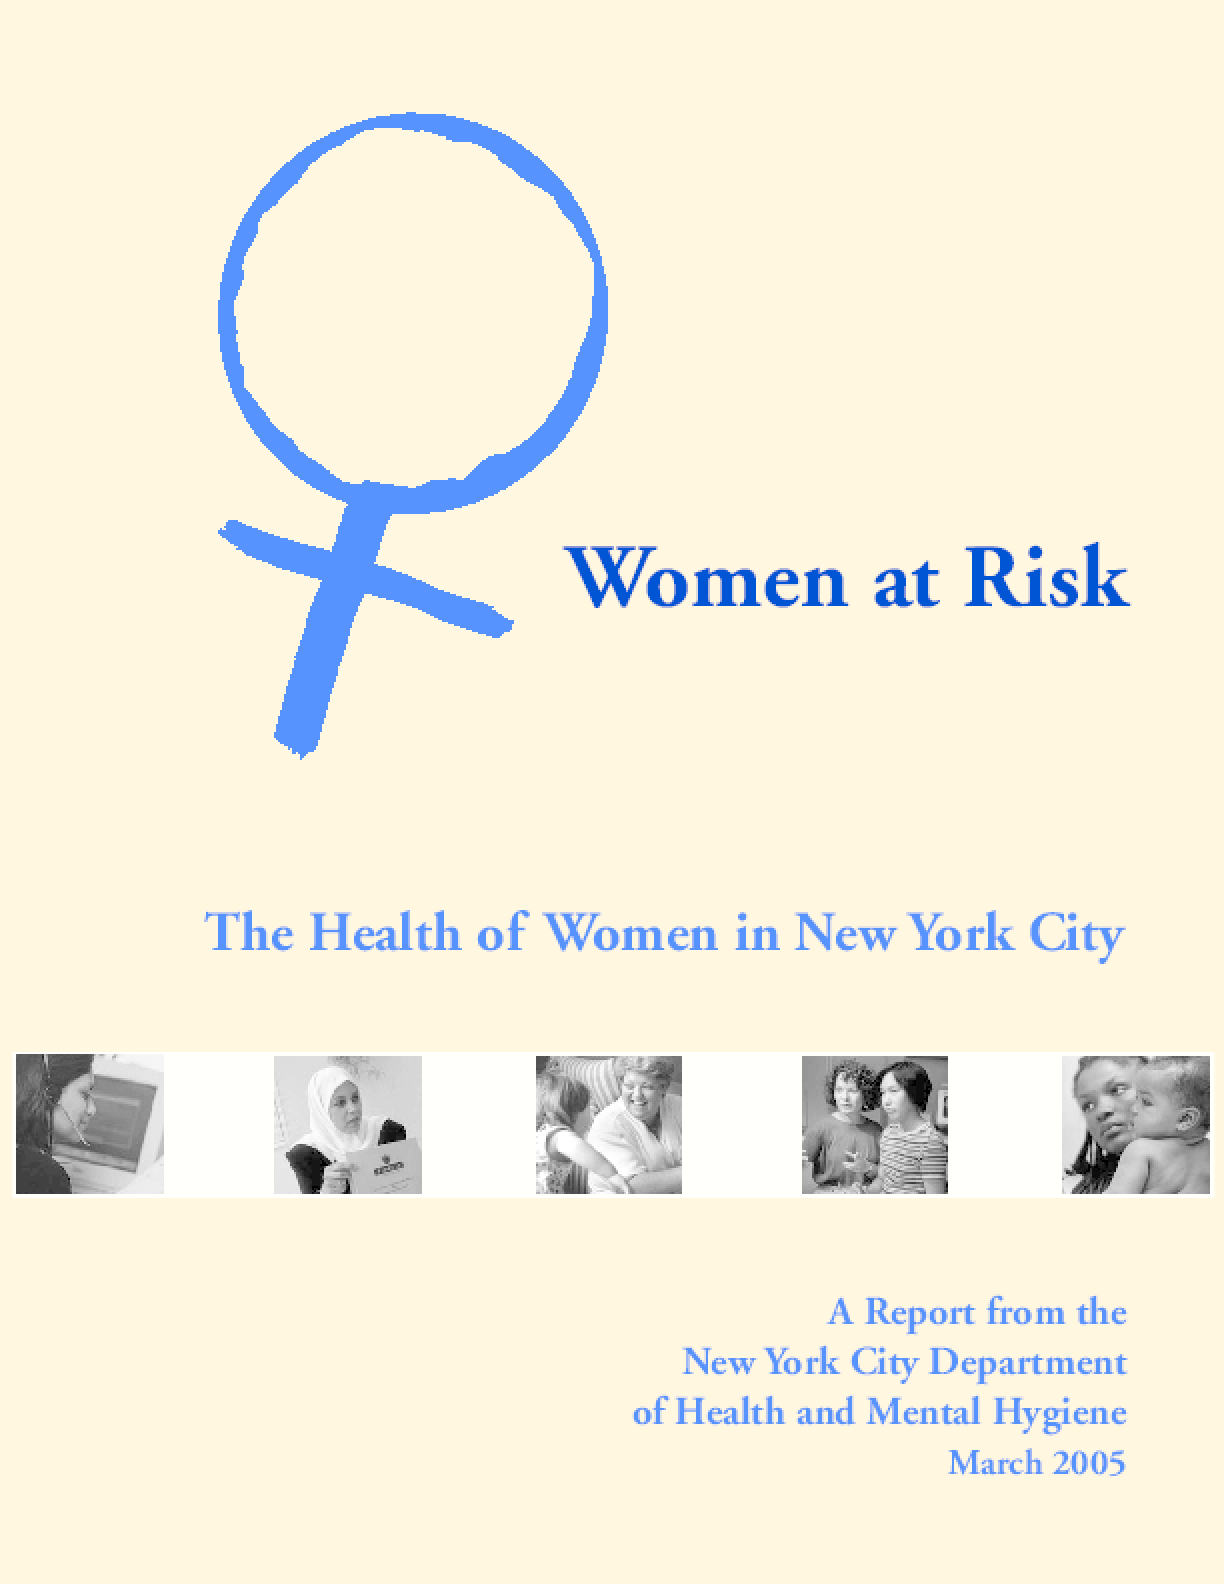 Women at Risk: The Health of Women in New York City